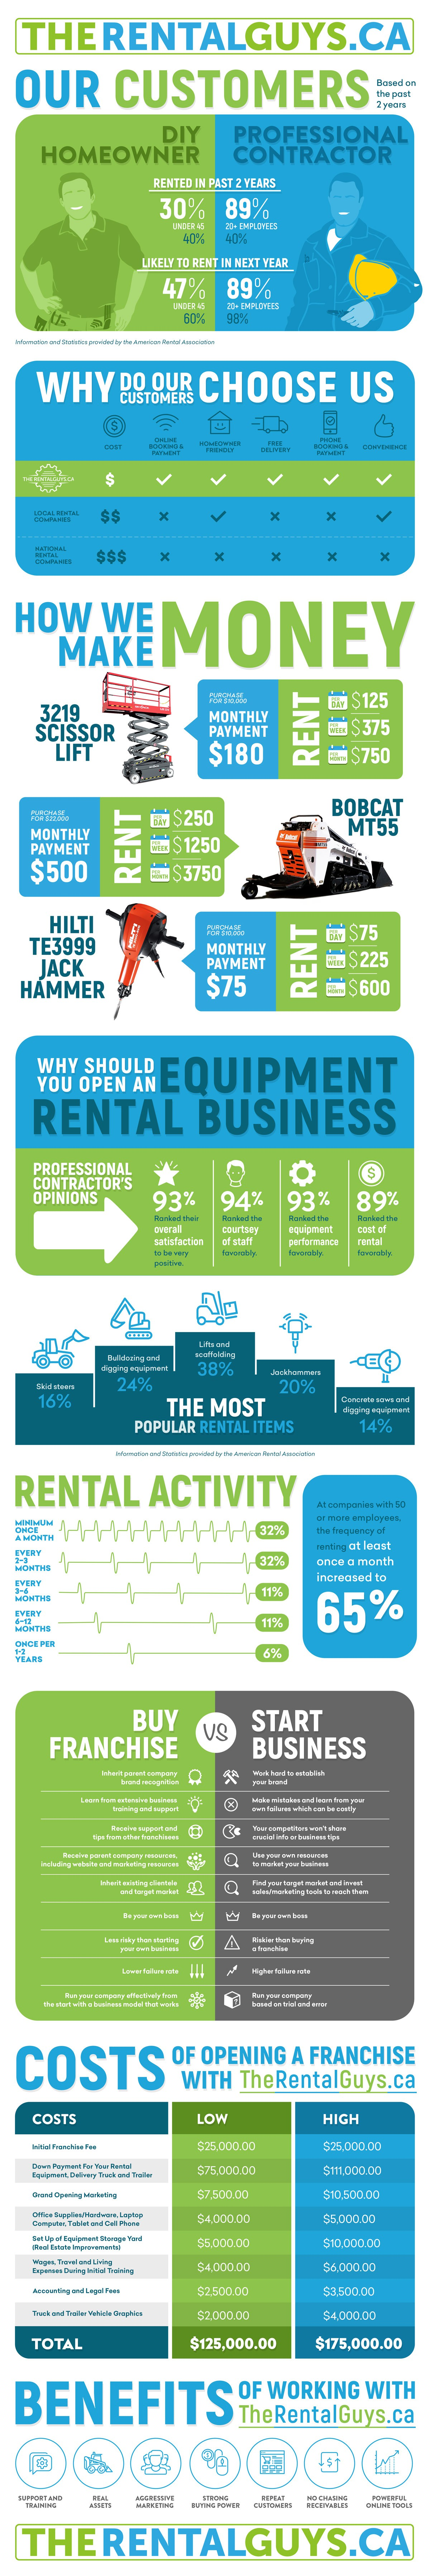 Create a beautiful and information filled graphic that helps sell more franchises.